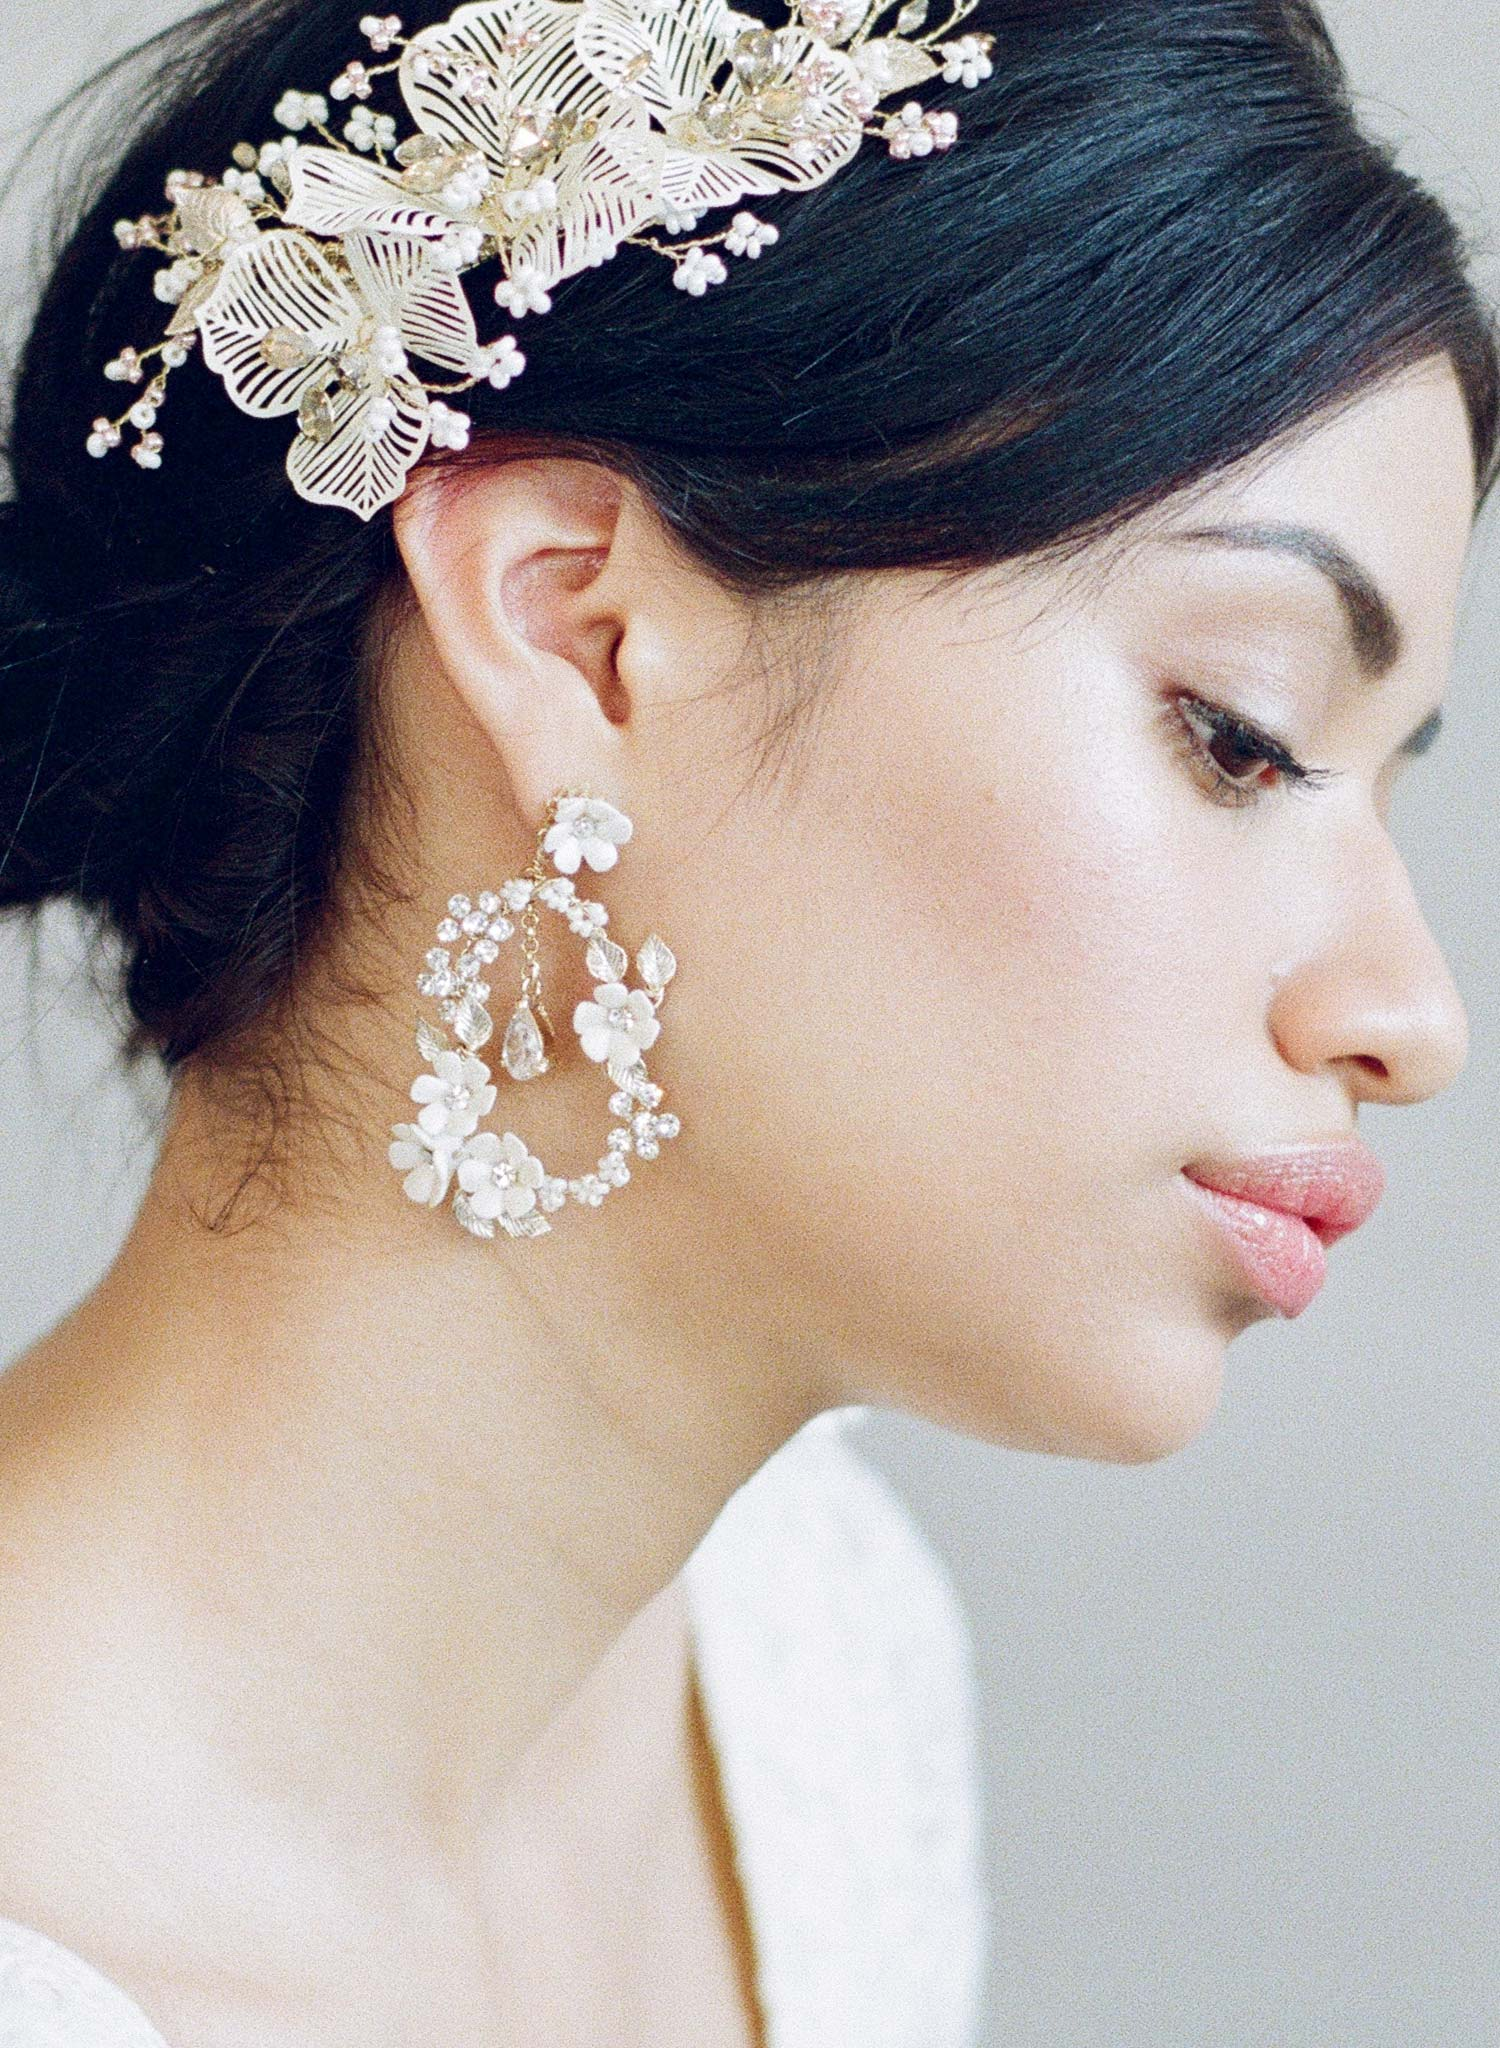 Porcelain blossom garden earrings - Style #857